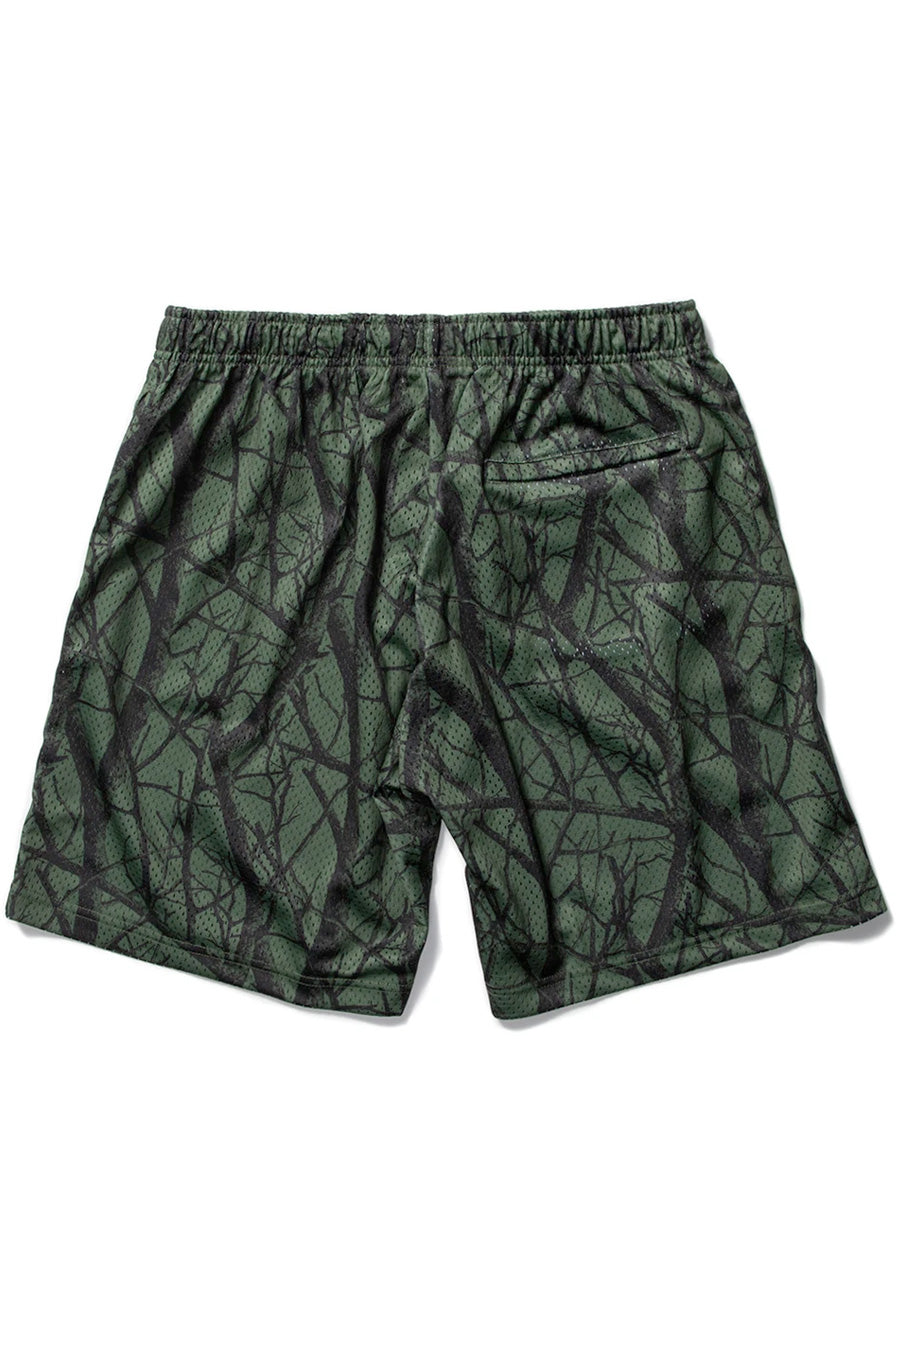 John Elliott - Green Duck Club Army Practice Shorts